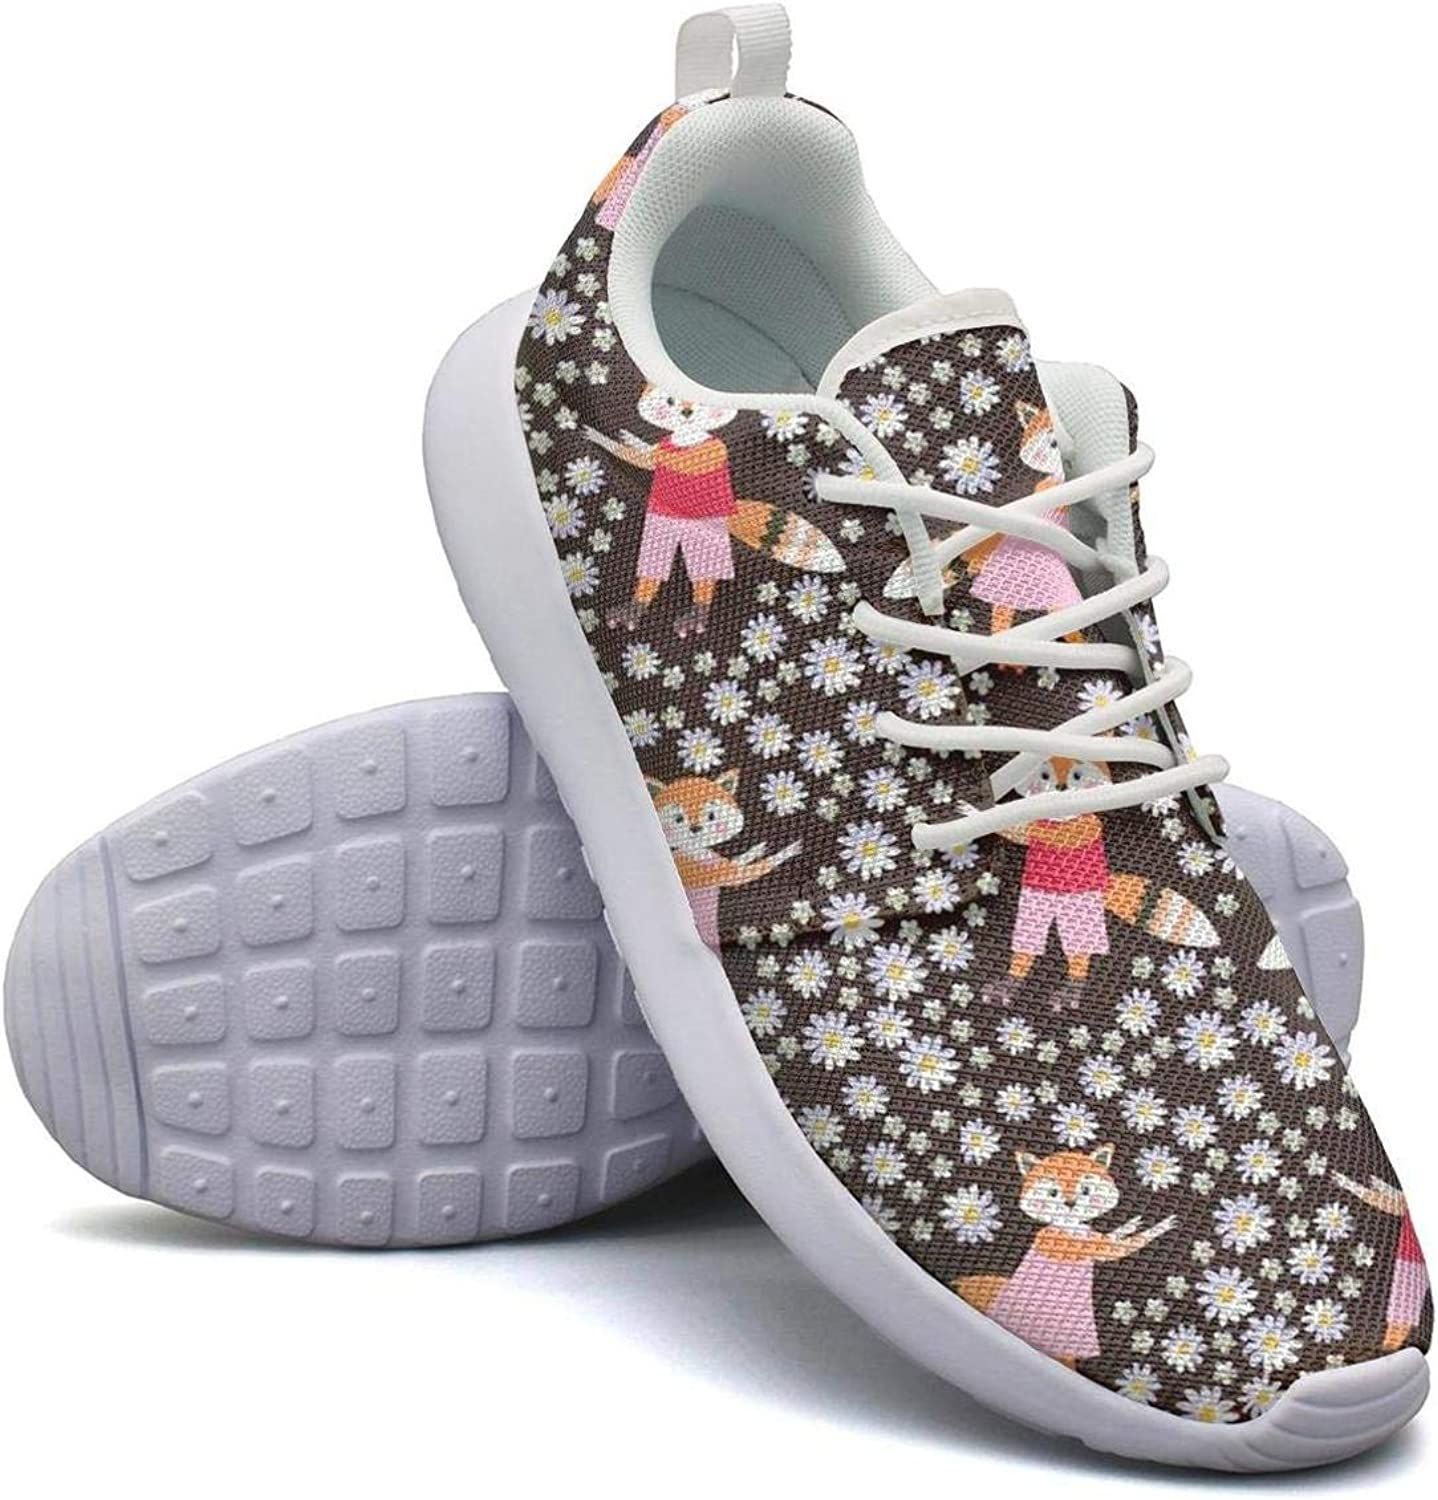 Comfort Womens Lightweight Mesh shoes Cute Daisy Flower and Fox Sneakers Running Lace-Up